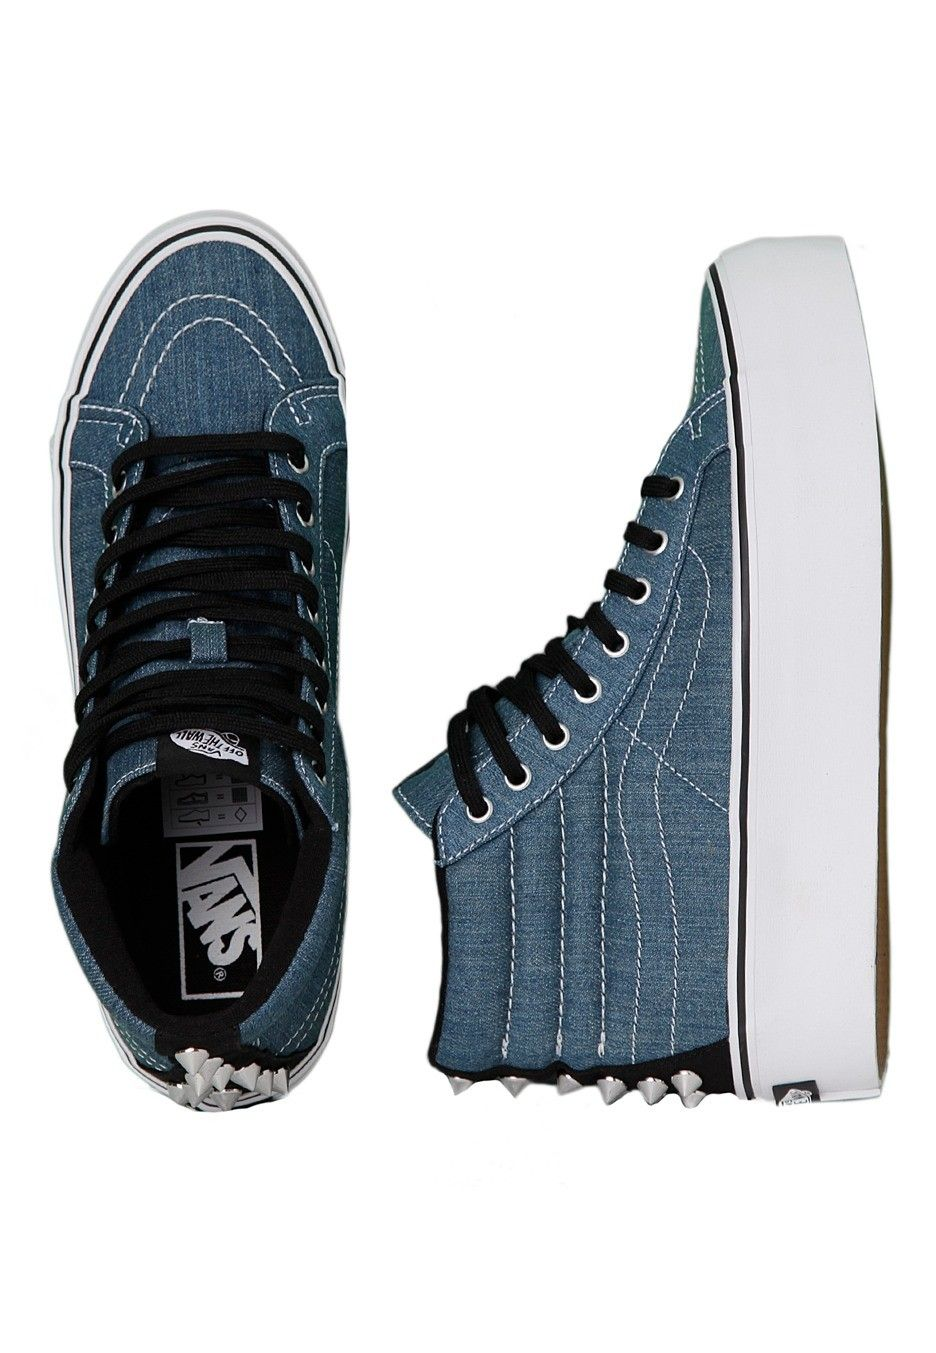 8e38accf71de Vans - SK8-Hi Platform Studded Blue True White - Girl Shoes - Impericon.com  Worldwide